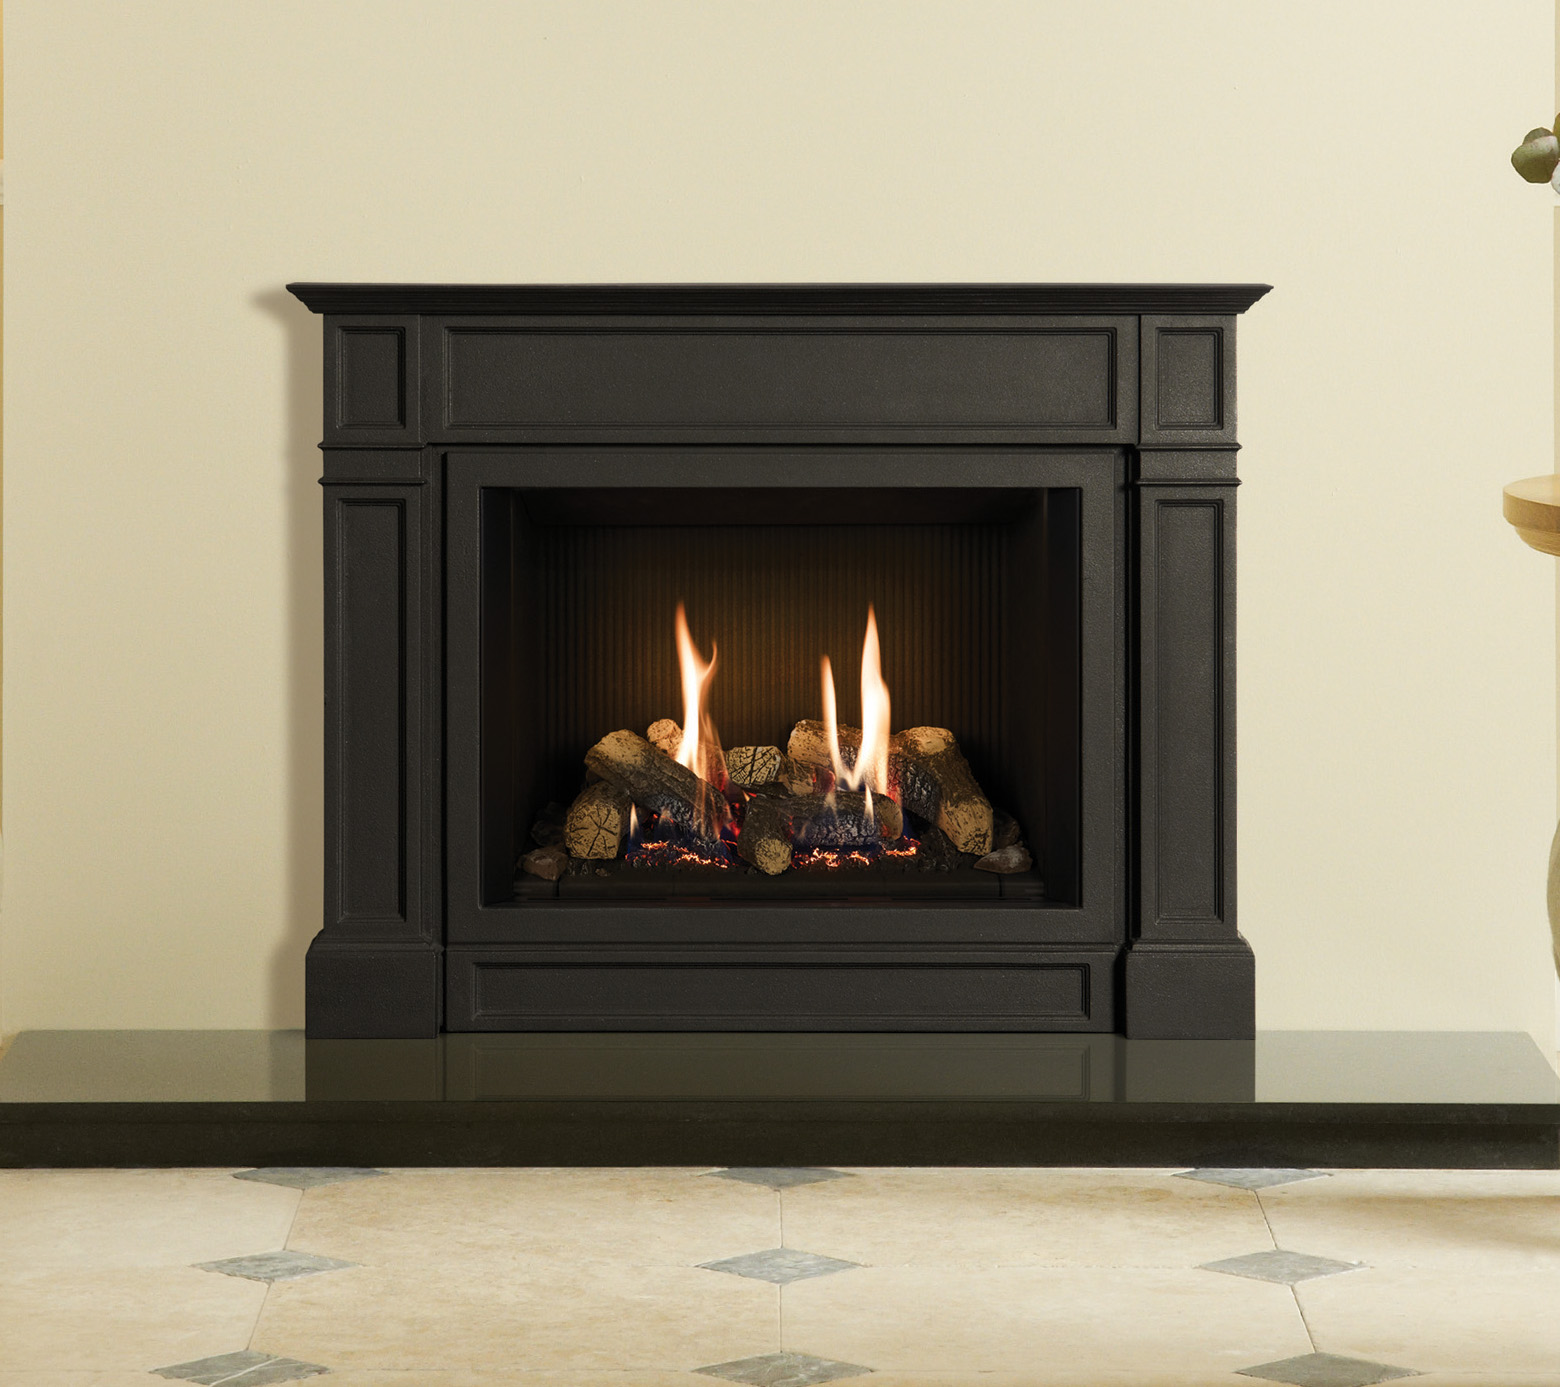 Spare Parts For Gas Fires Newmotorjdi Co